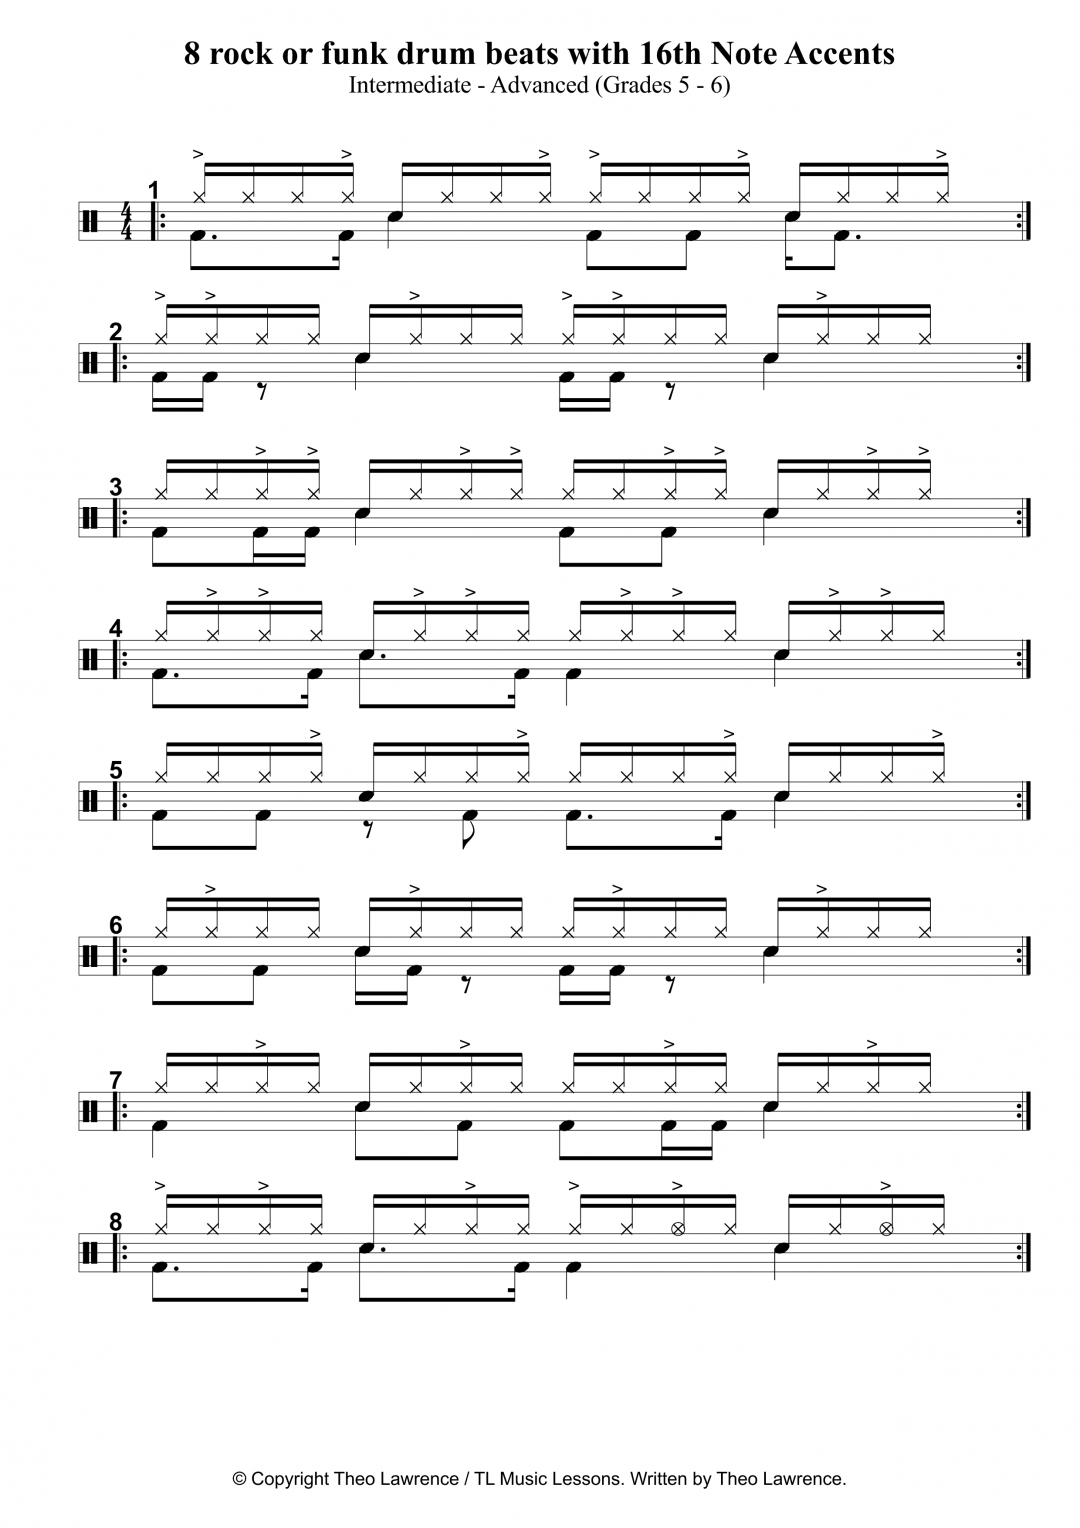 Grades 7-8 Advanced | Learn Drums For Free